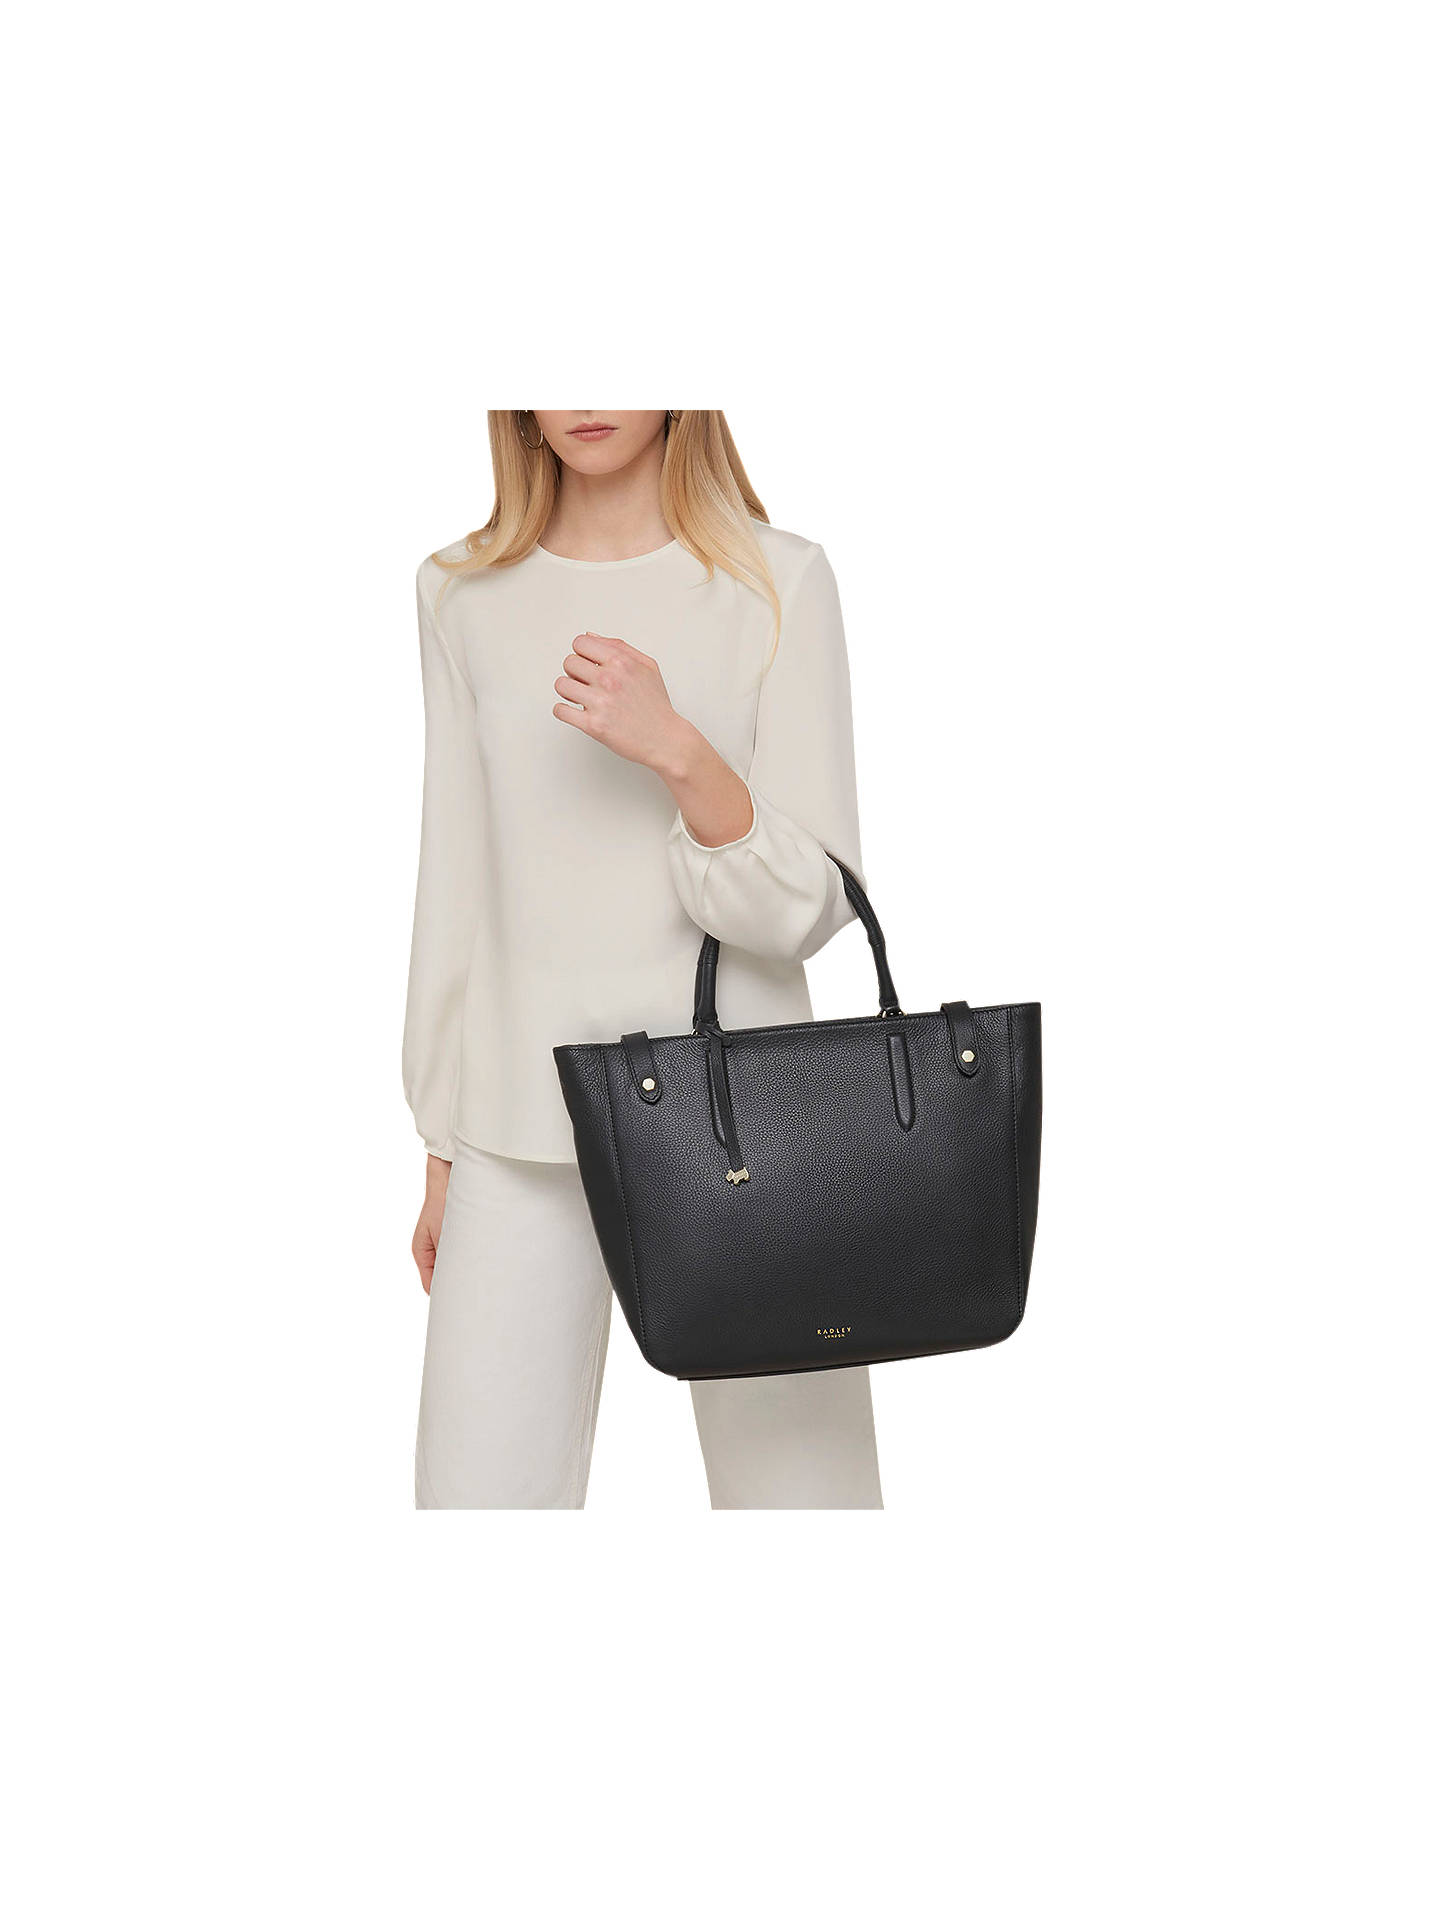 BuyRadley Witley Large Open Top Leather Grab Bag, Black Online at johnlewis.com